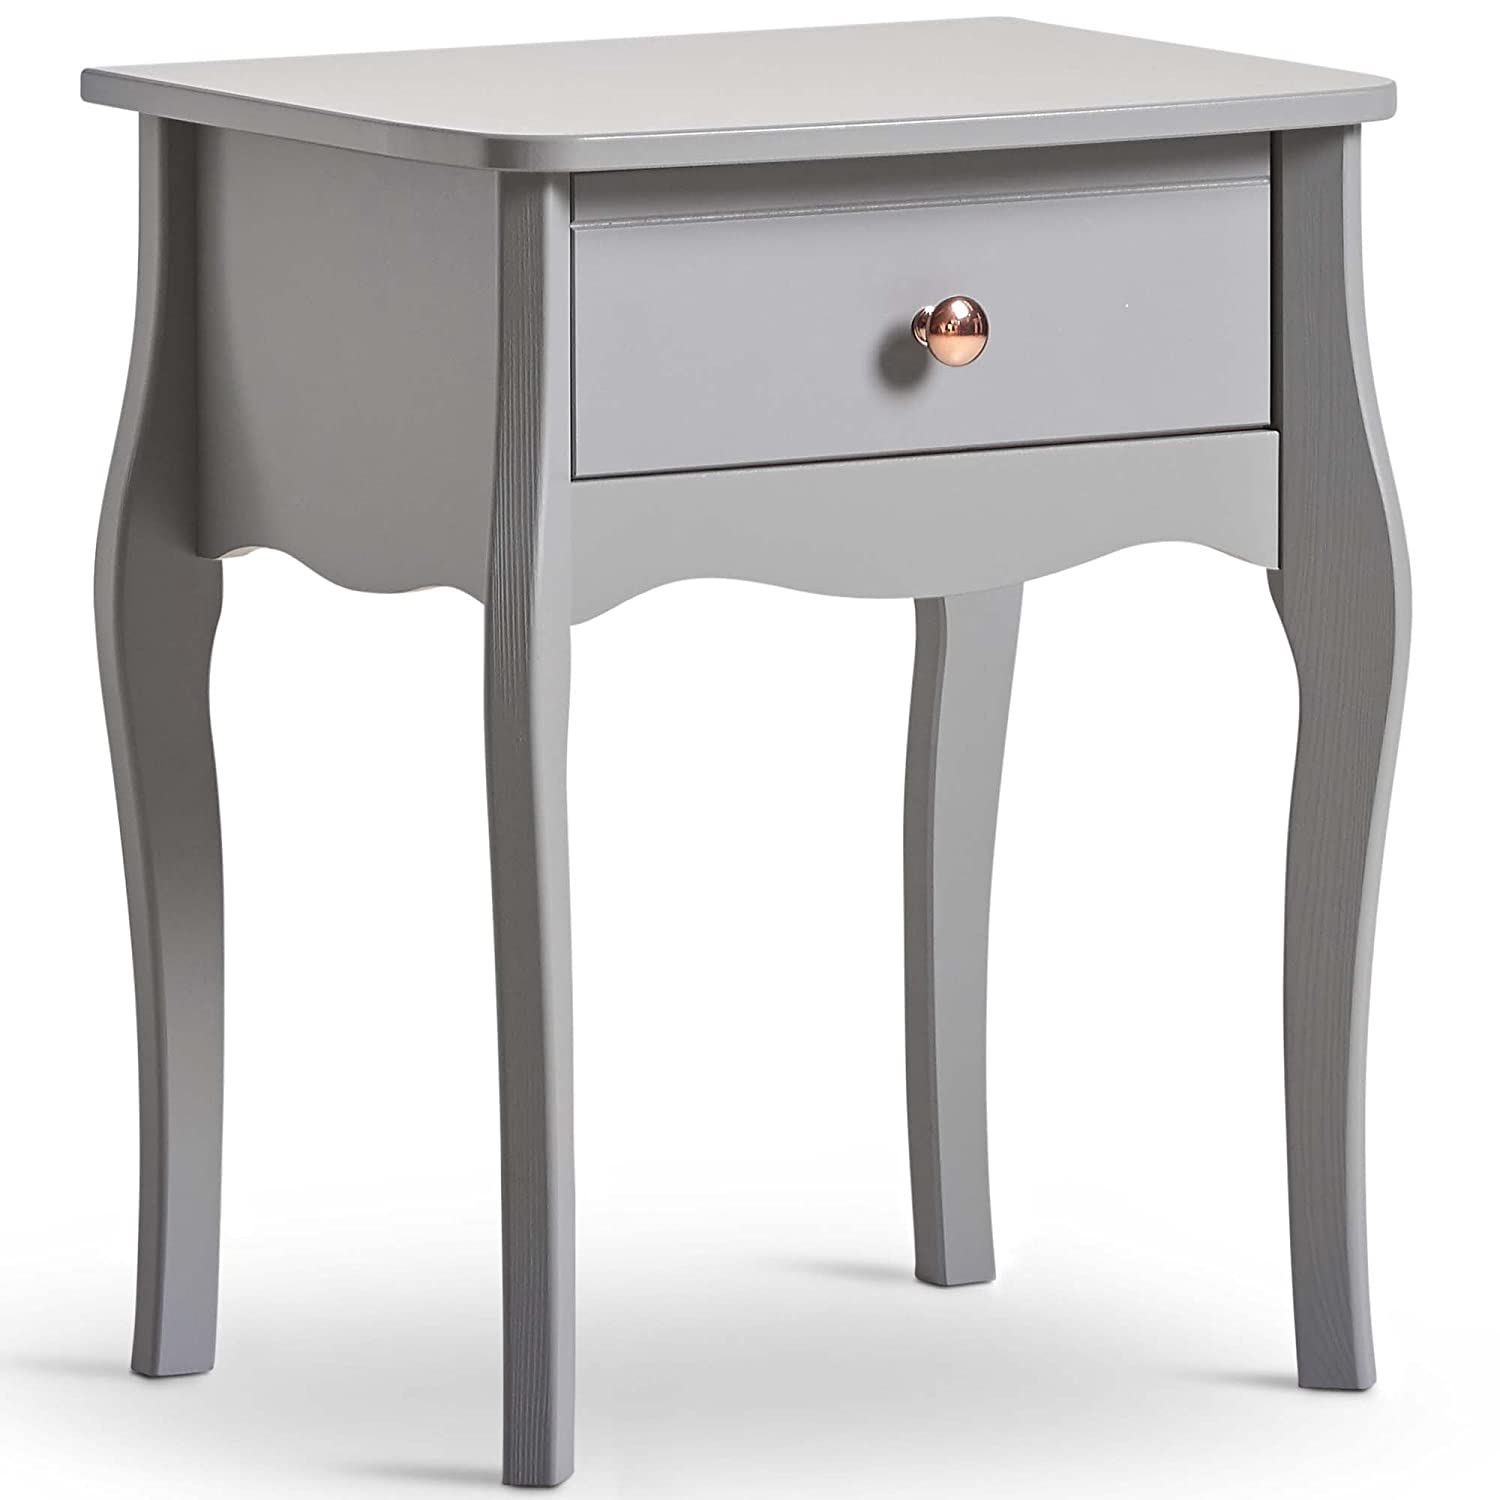 Beautify Grey 1 Drawer Bedside Table – Vintage Style with Rose Gold Handles – 1 Drawer Bedroom Storage Unit DOMU Brands